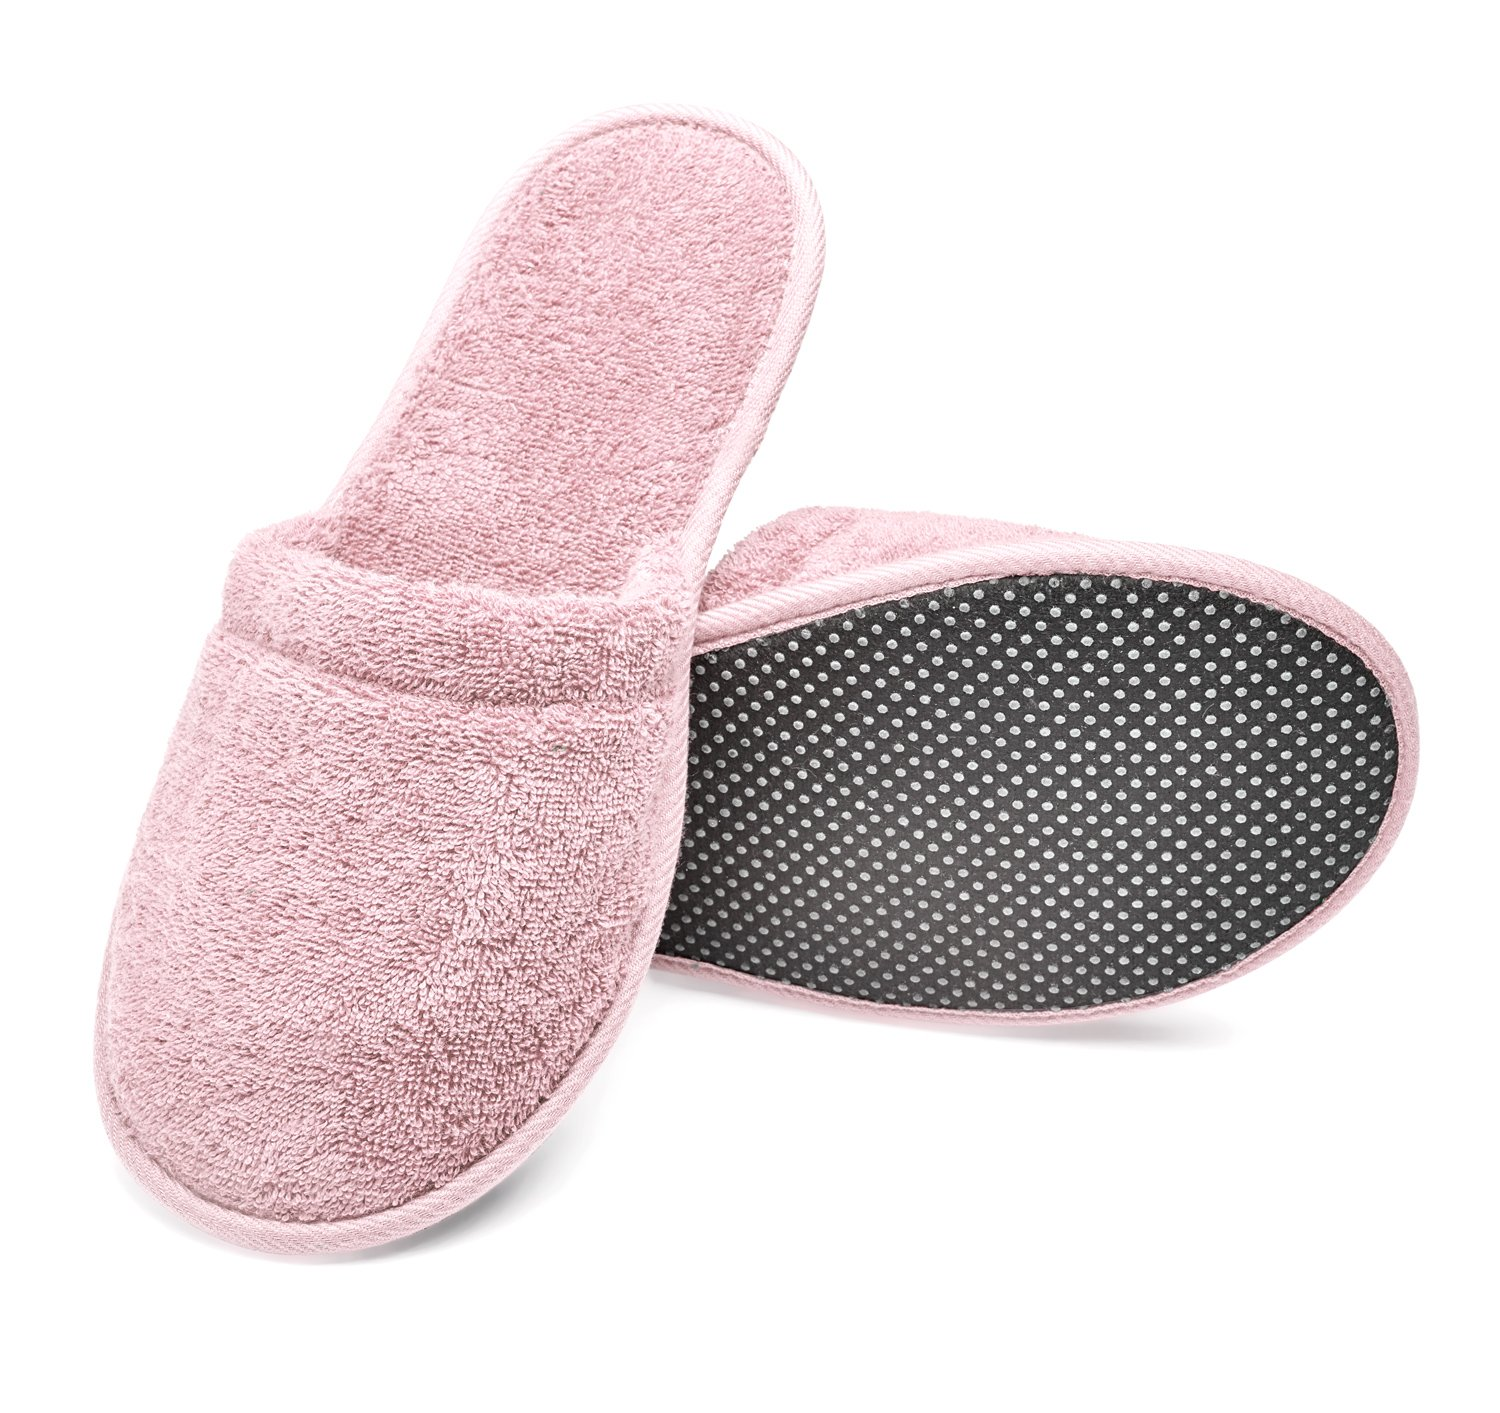 Arus Women's Organic Turkish Terry Cotton Memory Foam Spa Slippers Pink S/M by Arus